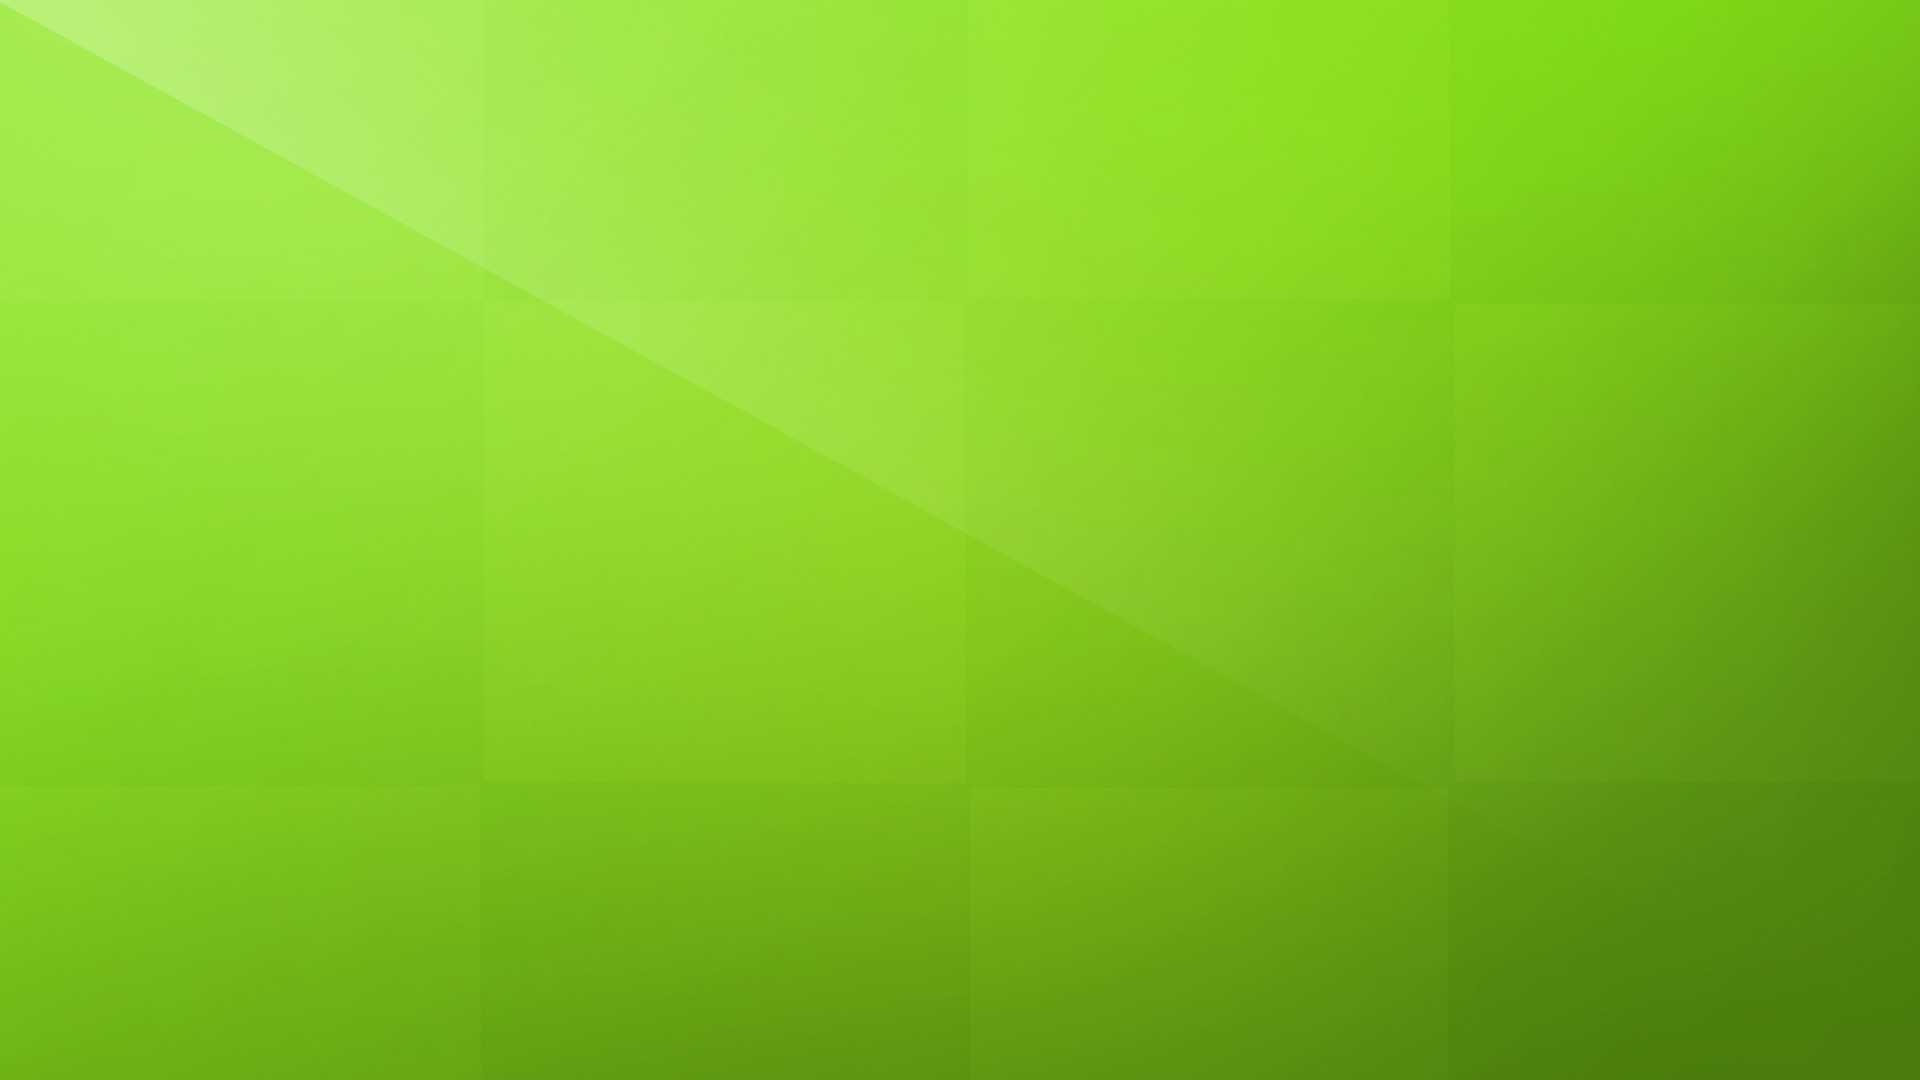 Solid Green Wallpaper (67+ images)